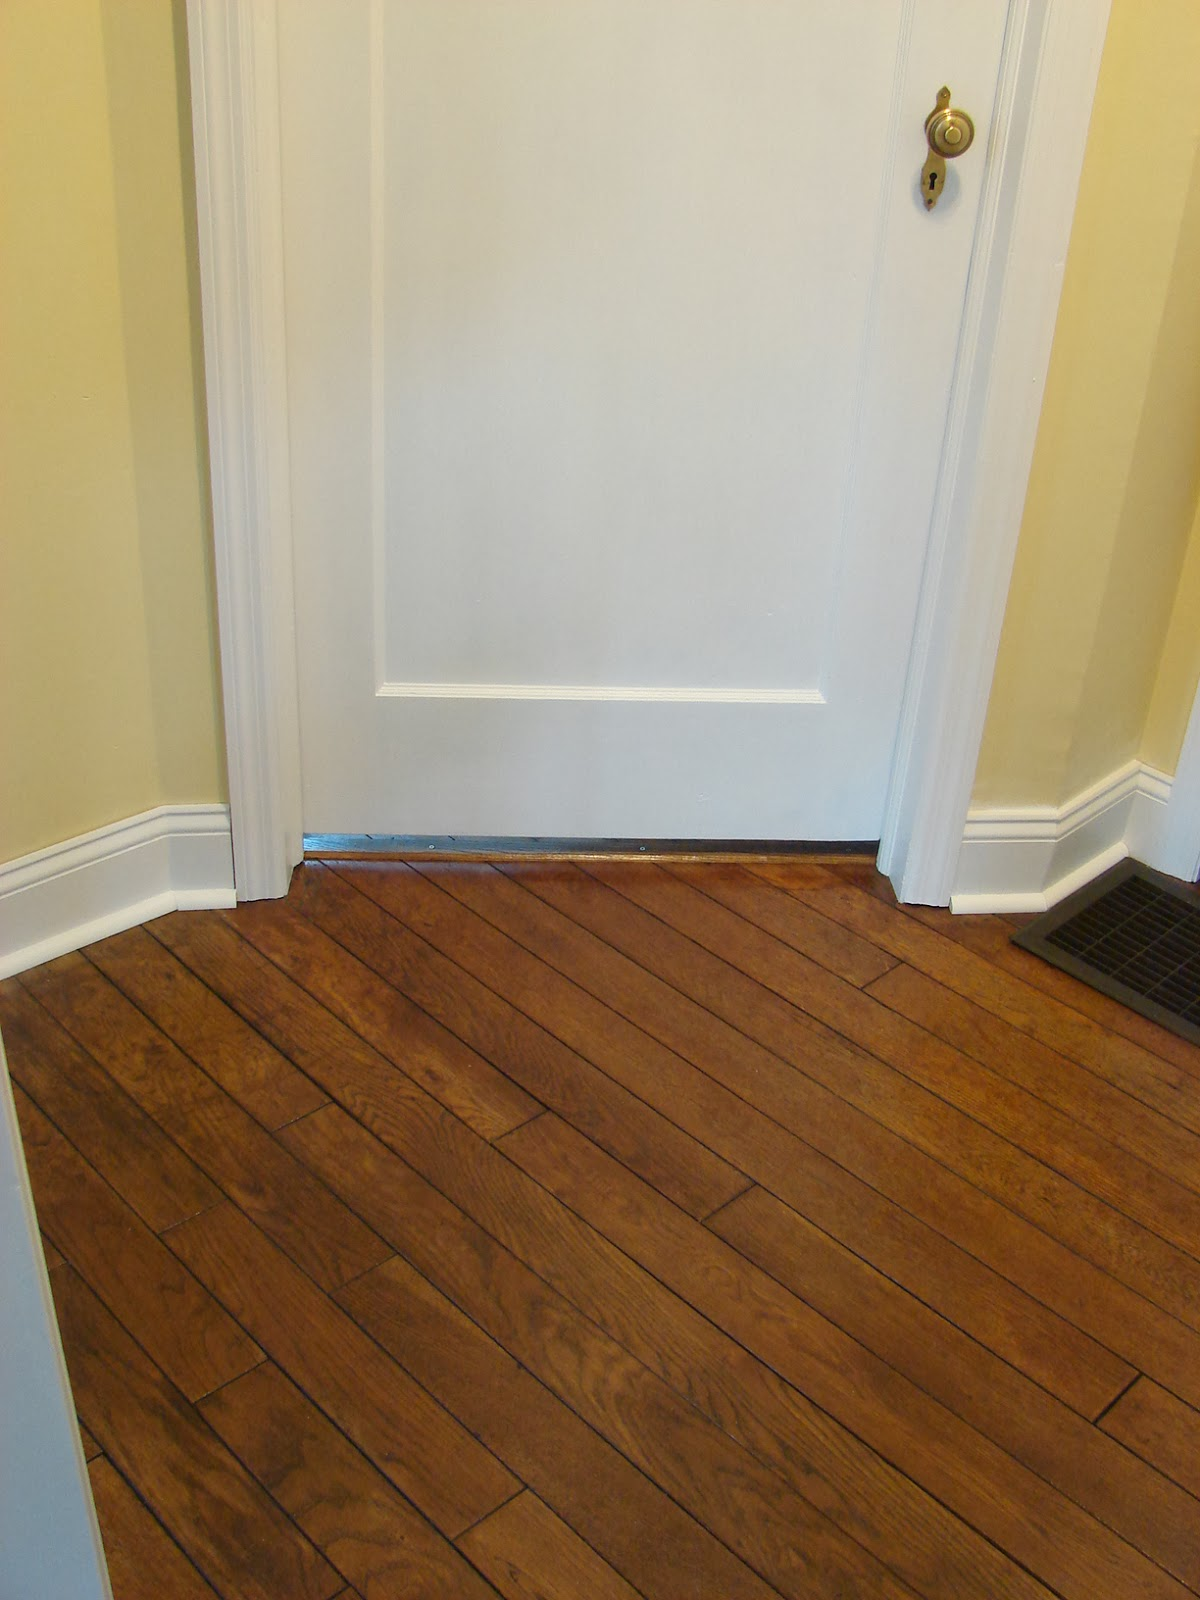 While I Was Refinishing The Doors And Replacing The Trim, I Also Refinished  The Wood Floor In This Area And Replaced The Floor Molding.